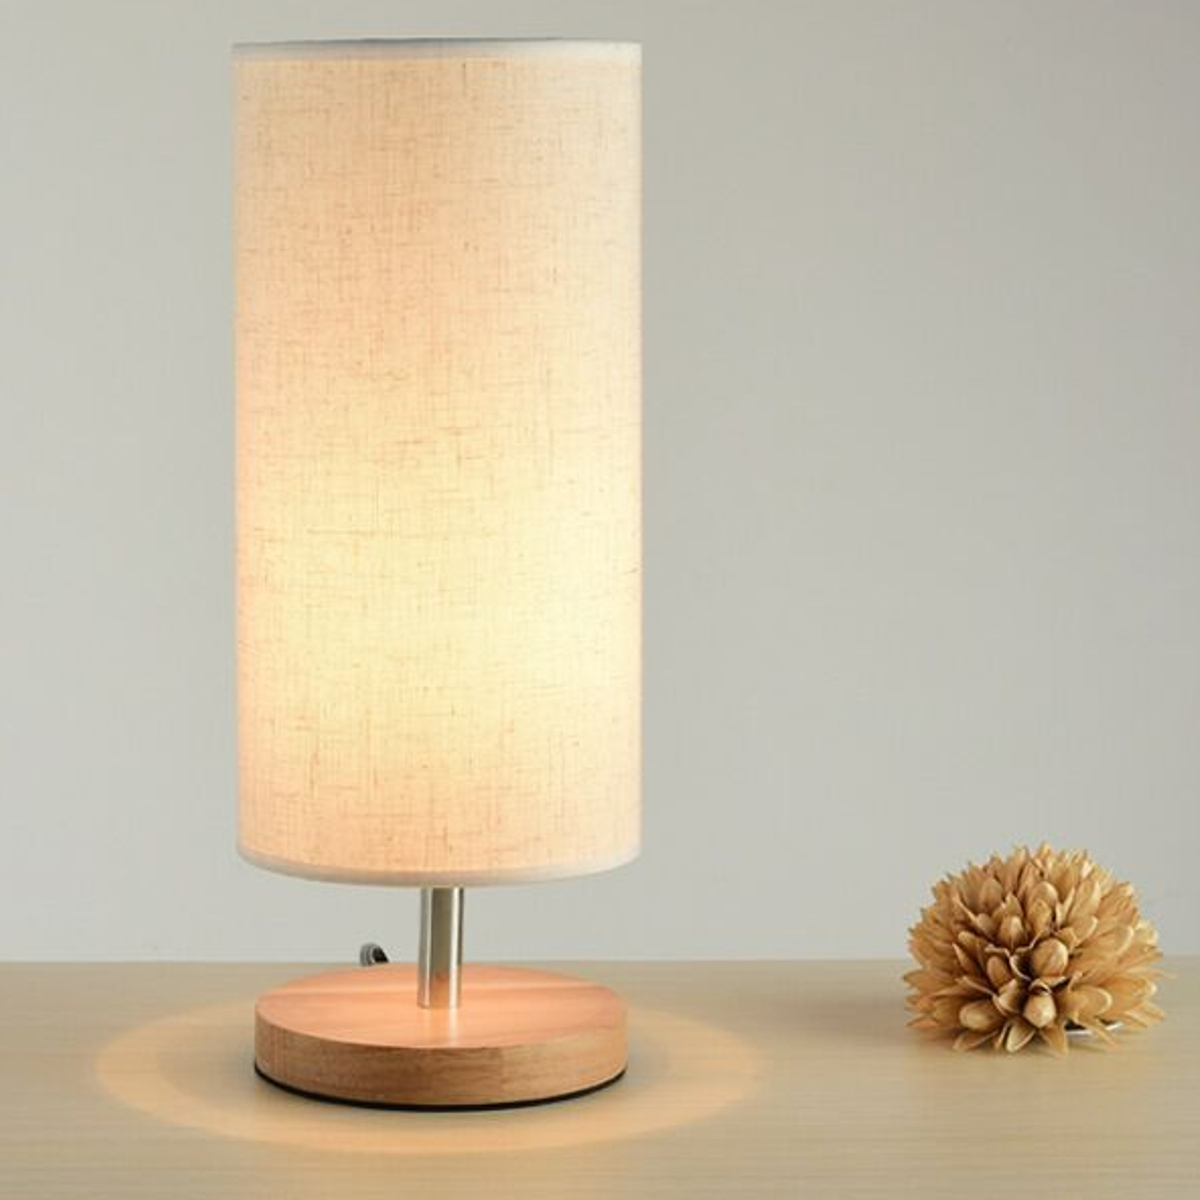 mrosaa table lamp bedside desk lamp solid wood nightstand lamp with linen fabric shade